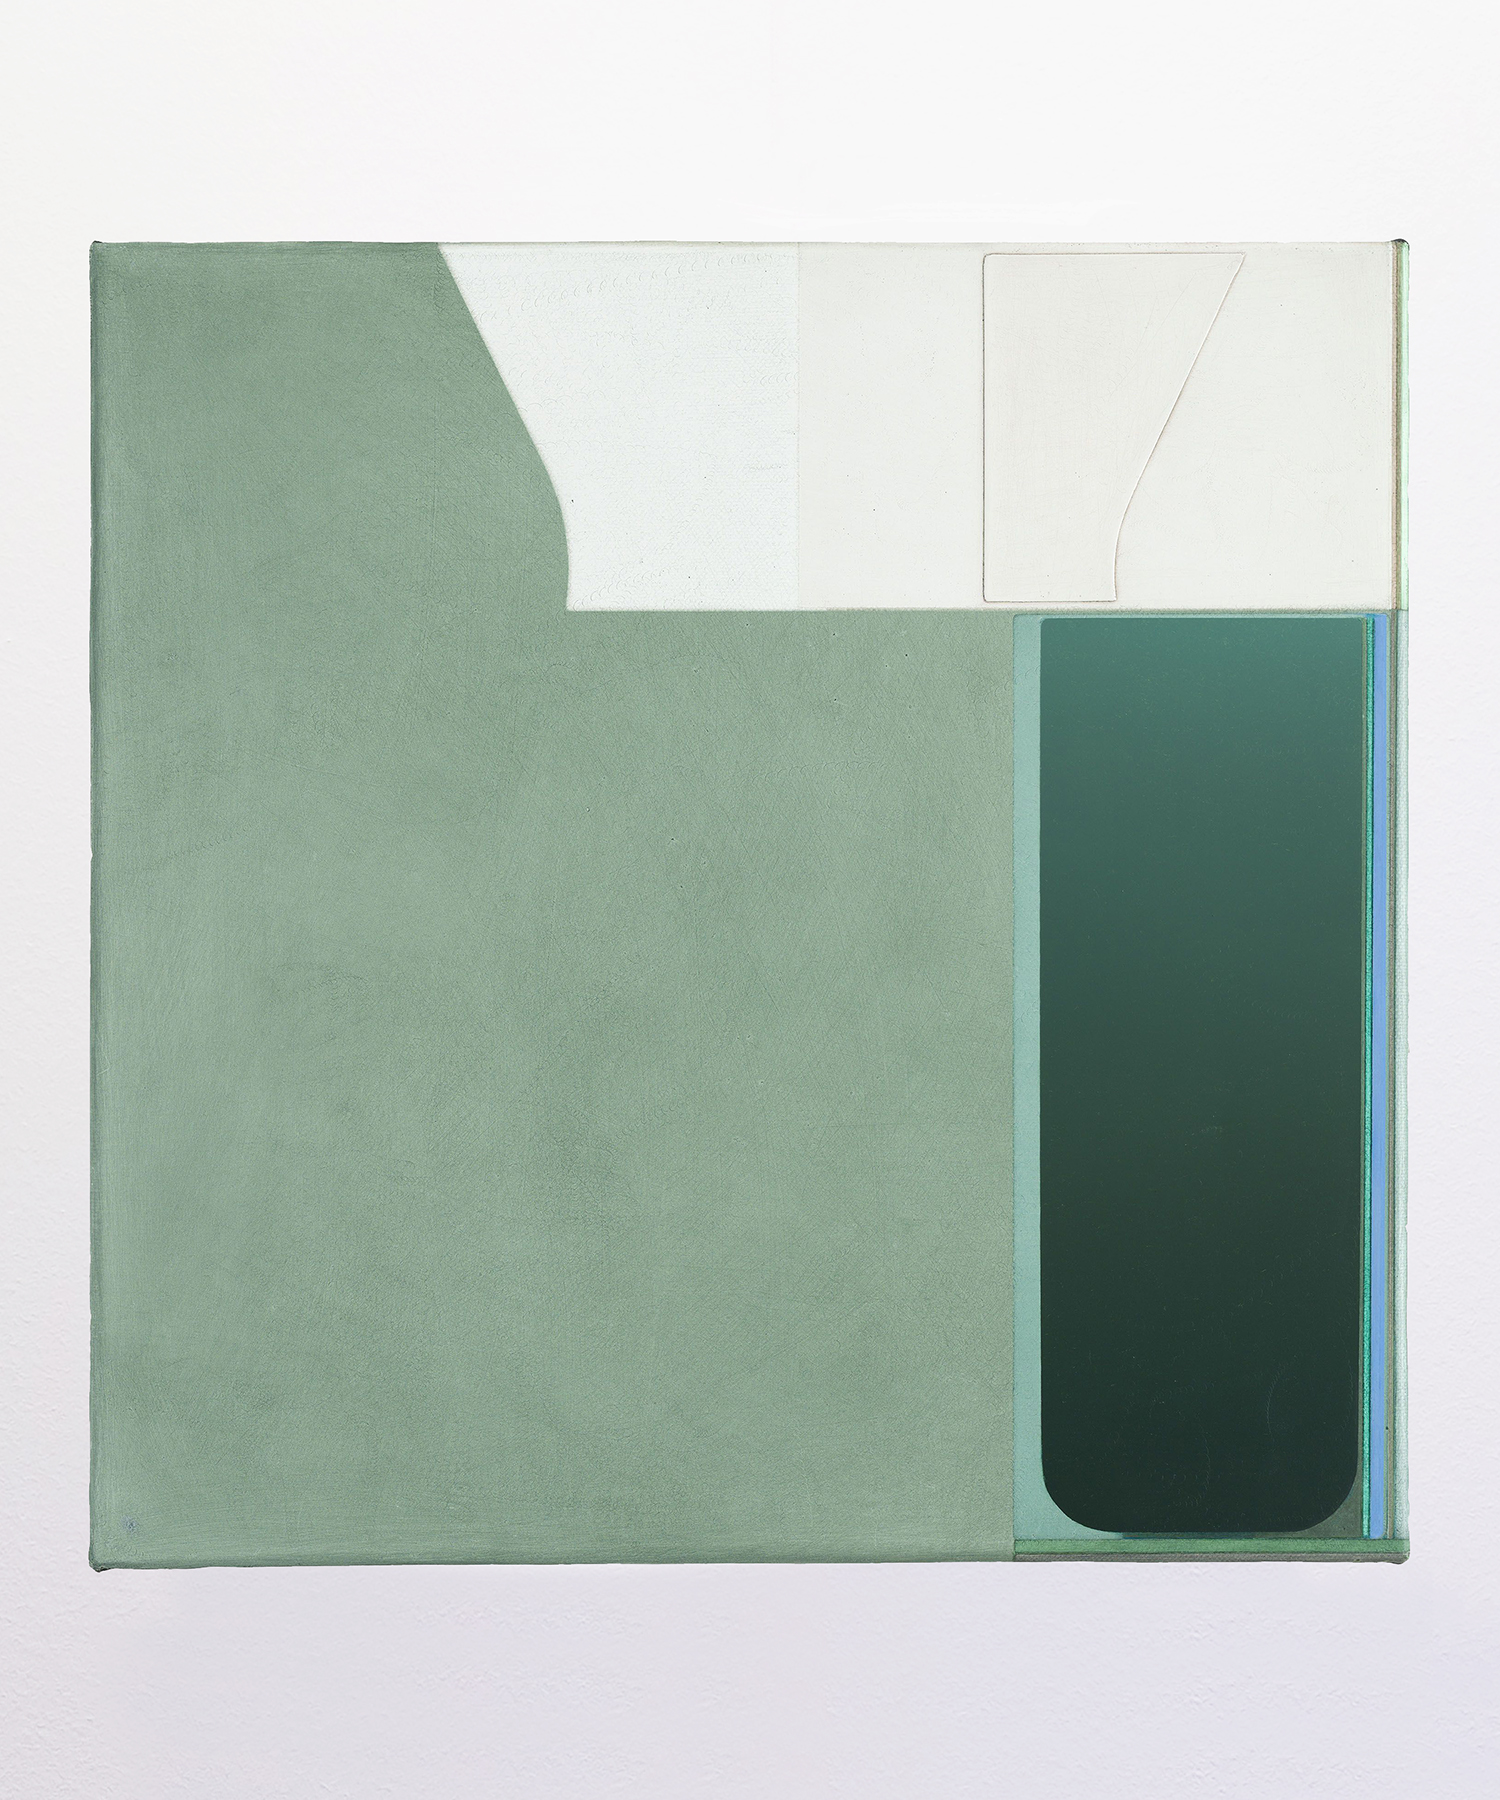 MARIANNE BOESKY GALLERY | NEW YORK + ASPEN SVENJA DEININGER   Untitled , 2019 Oil on canvas 19.74 in x 19.75 in / 50 cm x 50 cm